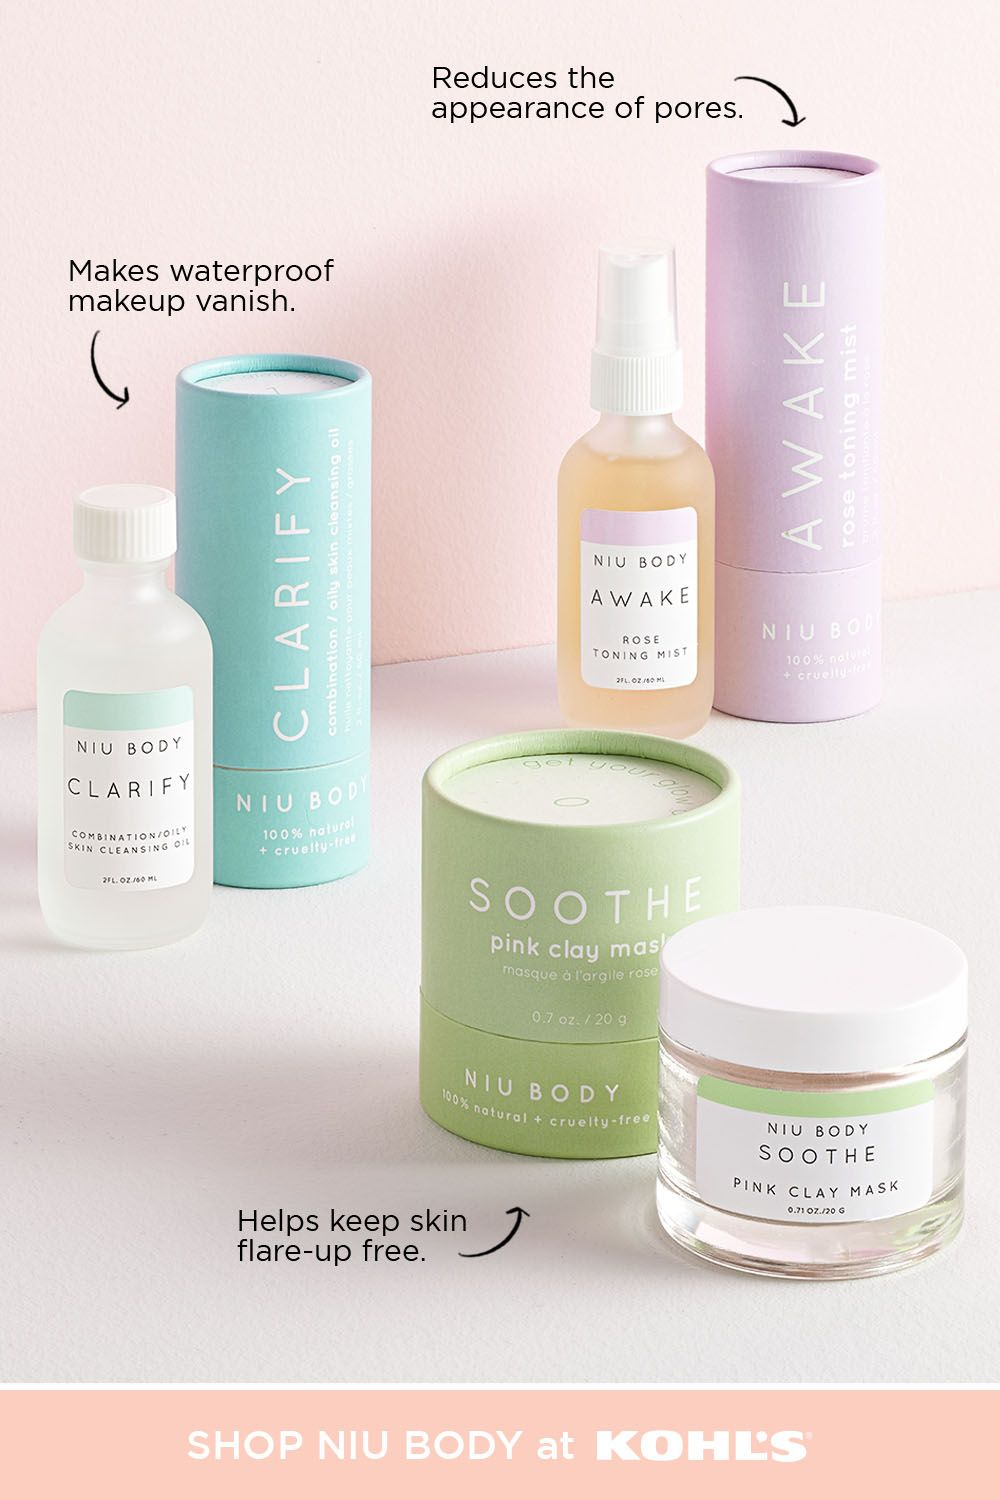 With spring right around the corner, it's the perfect time for a skincare refresh. Looking to try something new? Check out NIU BODY, a natural and vegan line of skincare products, featuring Clarify cleansing oil, Awake rose toning mist, or Soothe clay mask. Shop all things beauty, skincare, haircare and more at Kohl's and Kohls.com. #skincare #beauty